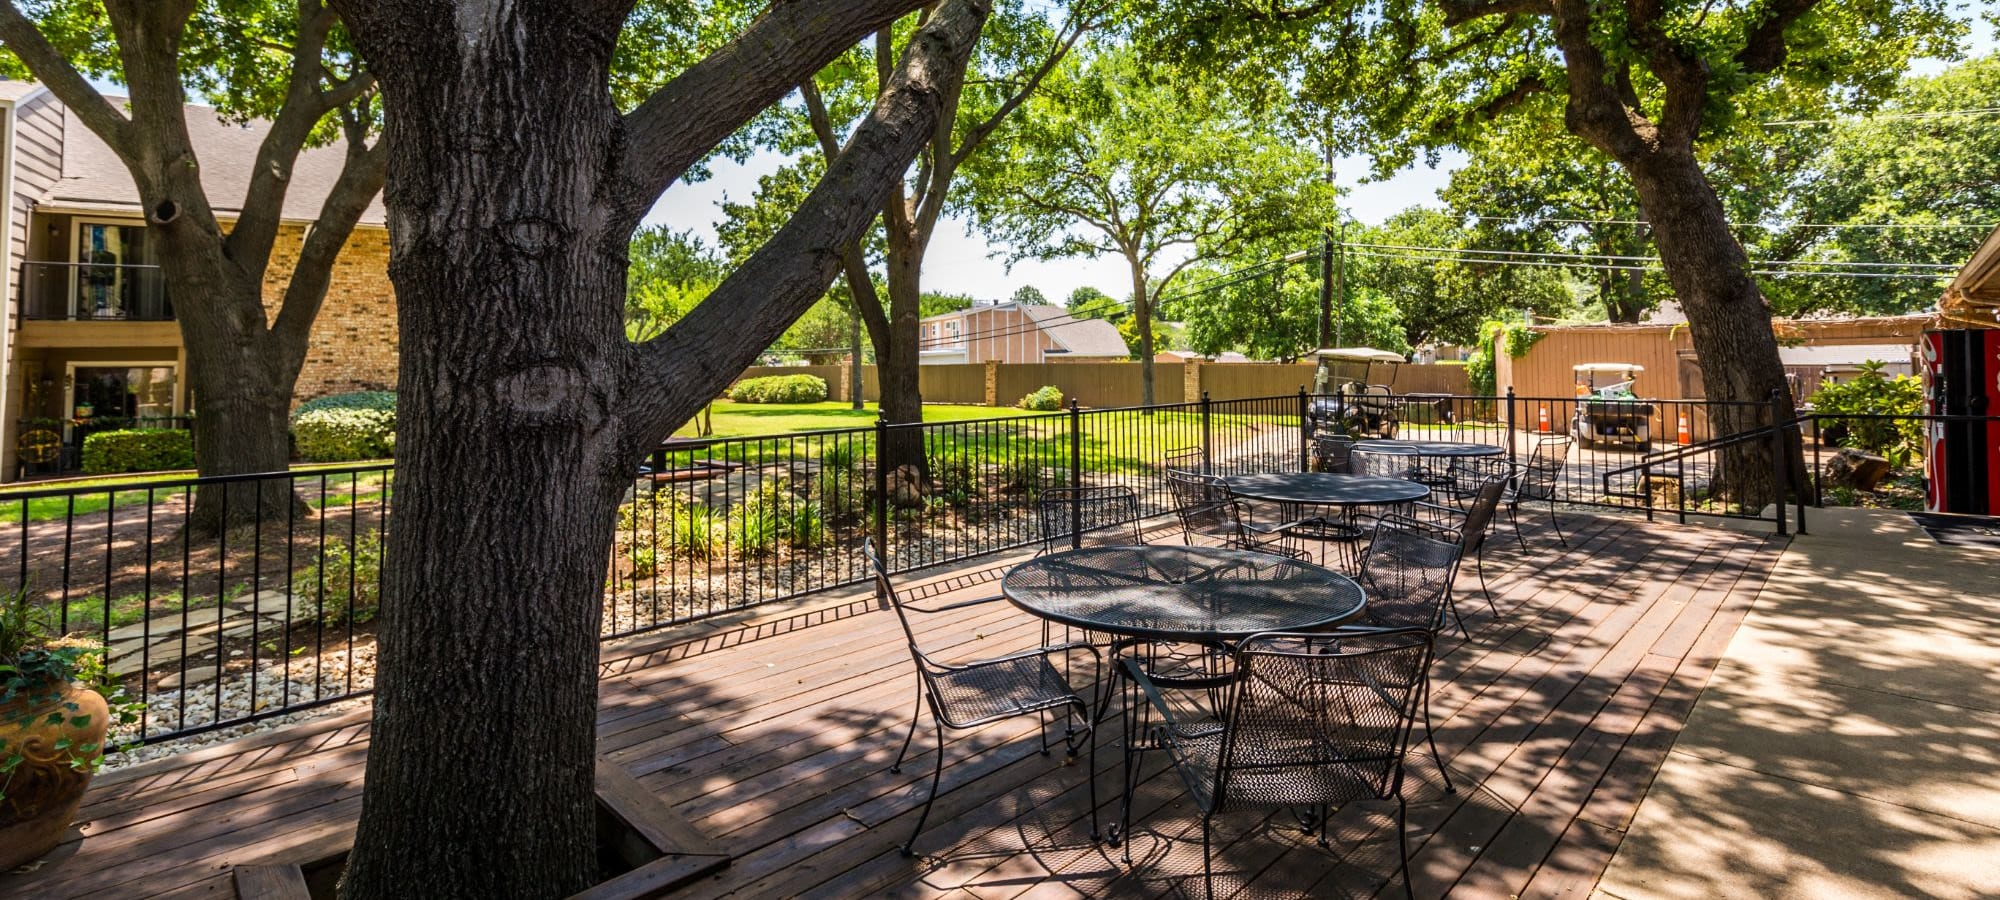 Pet policy at The Park at Flower Mound in Flower Mound, Texas